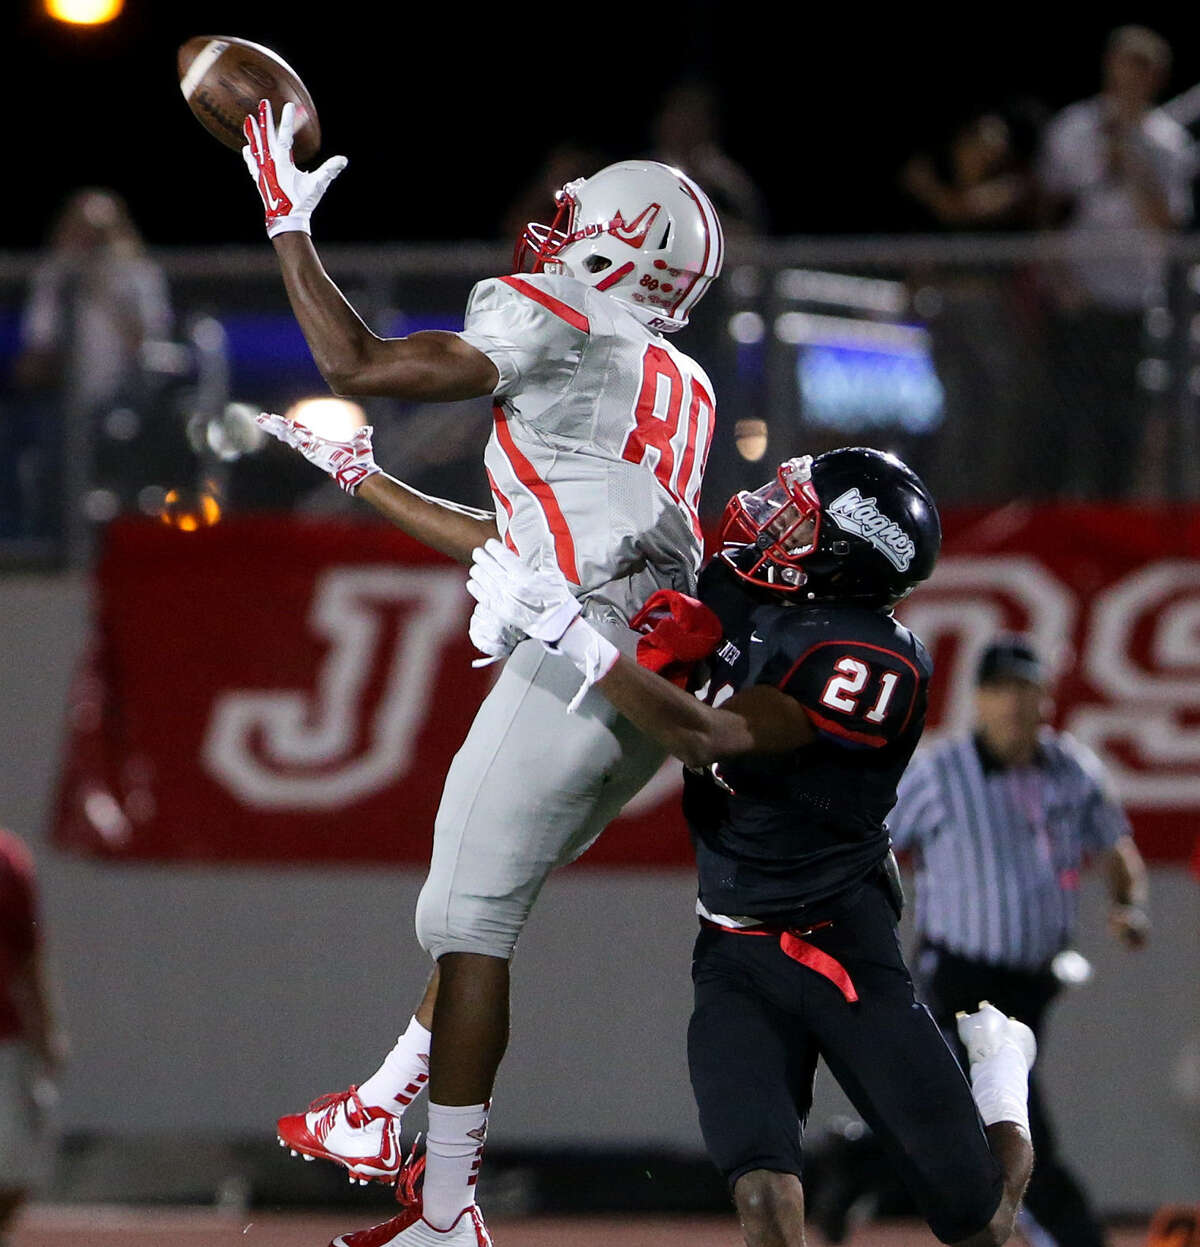 Judson's Michael Akai pulls down a 37-yard pass over Wagner's Jacorey Walker during the first half at Rutledge Stadium.